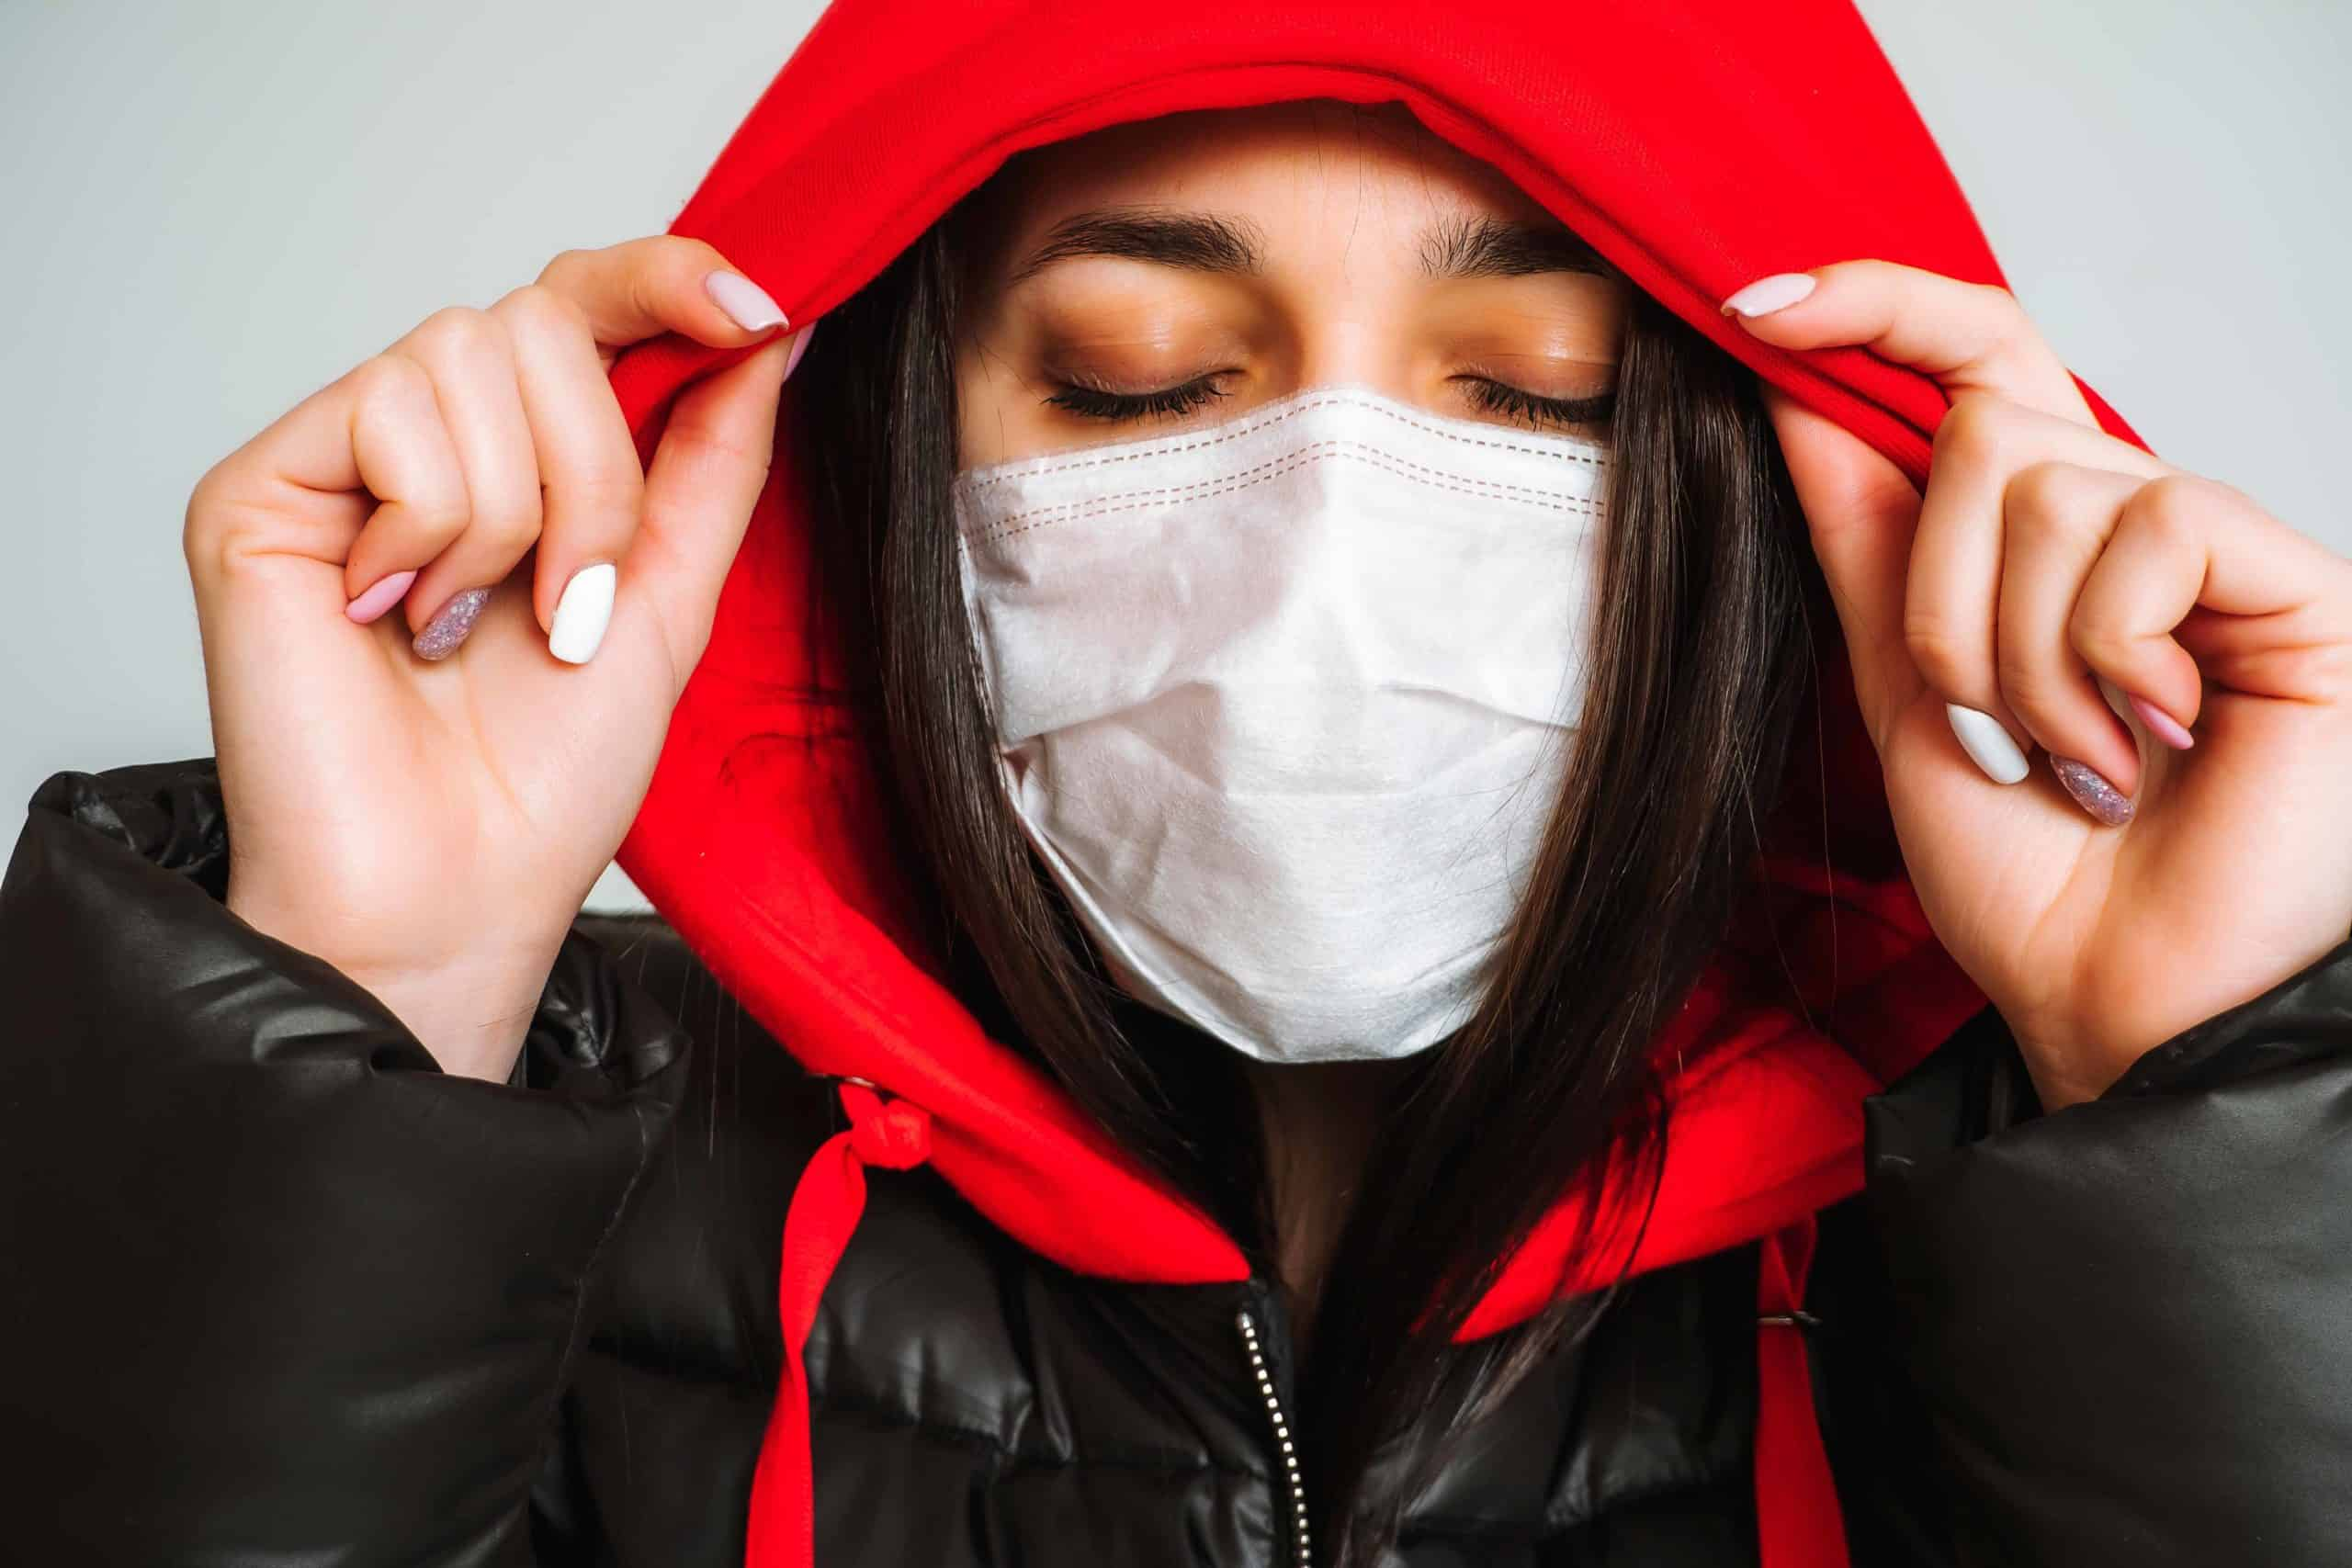 Tips for Organizing an Addiction Intervention during the COVID-19 Pandemic